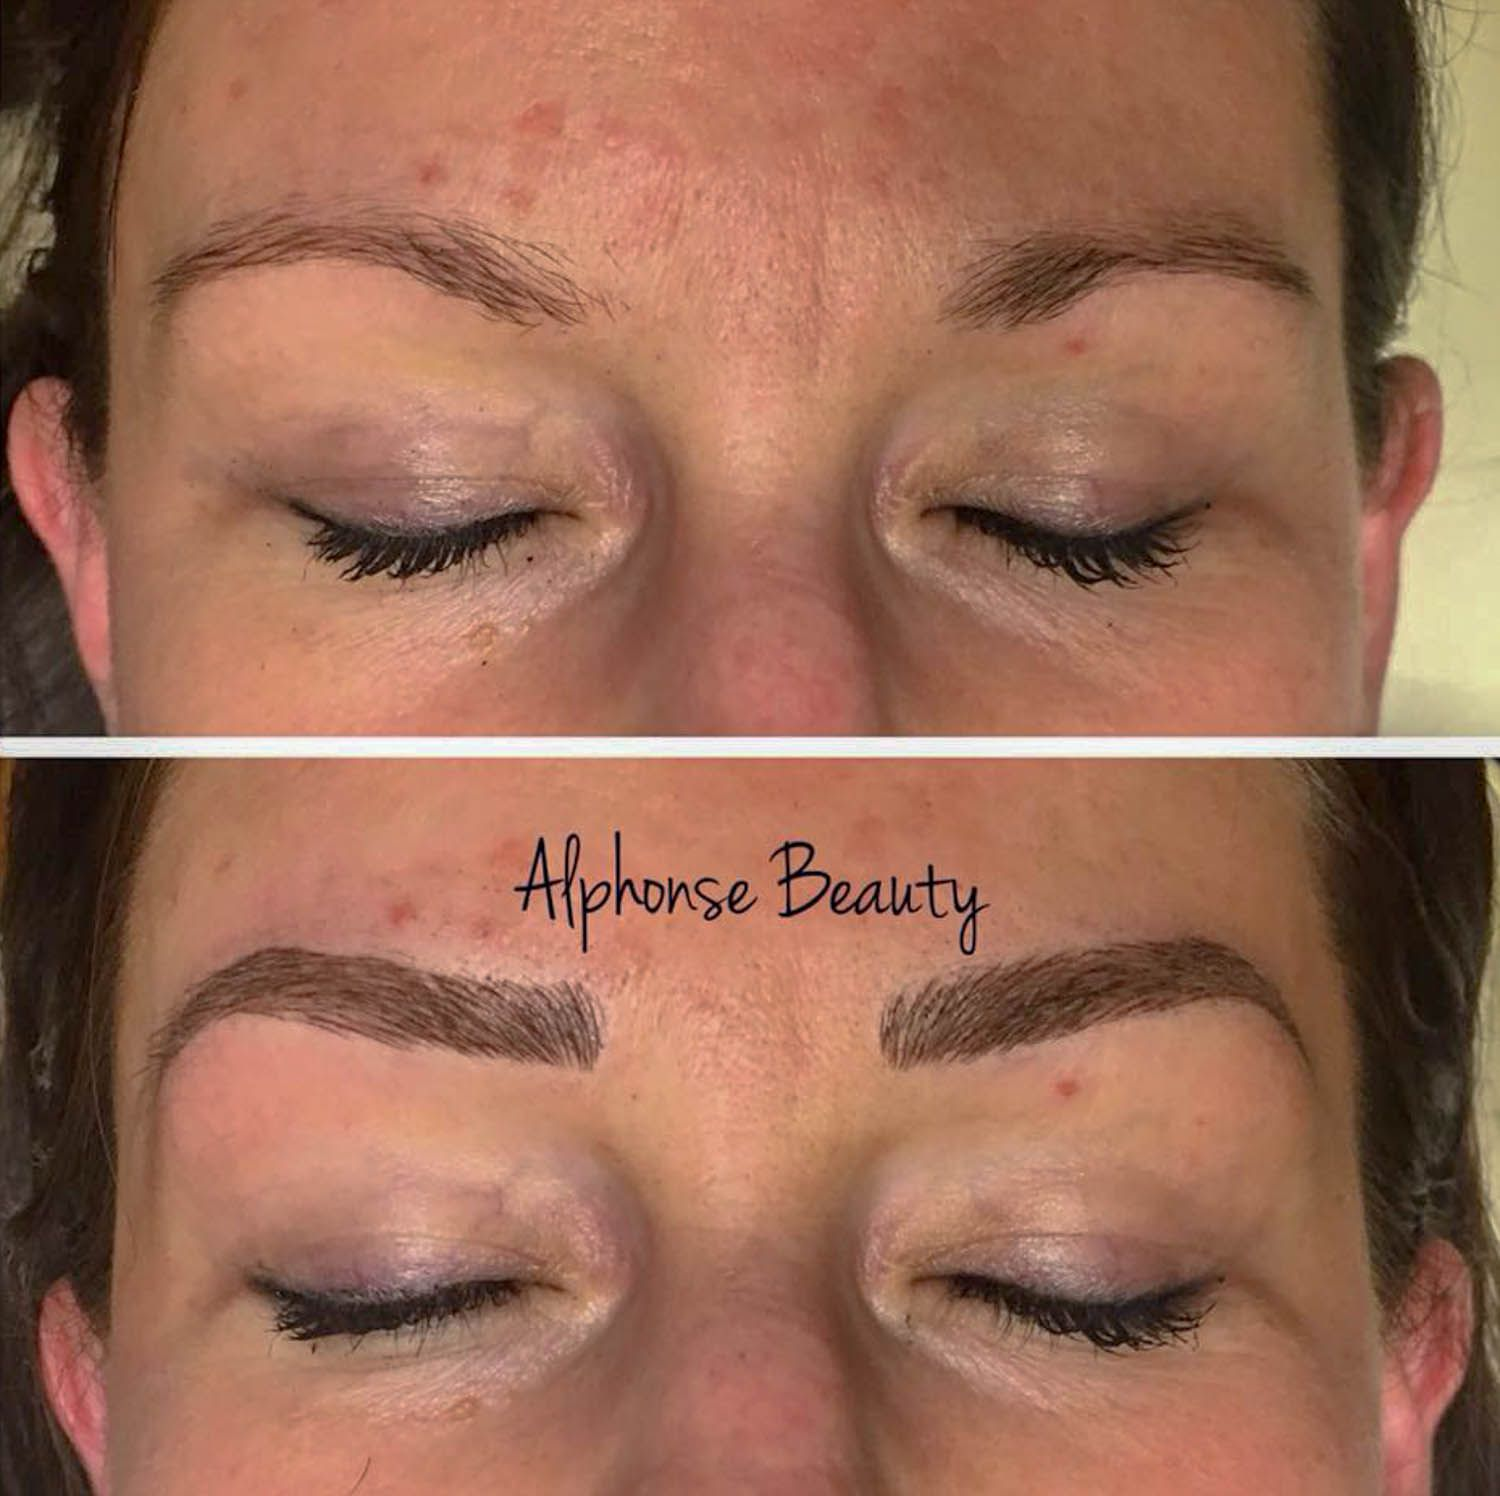 Results from Cosmetic Tattoo Microblading Procedure at Alphonse Beauty Microblading Studio